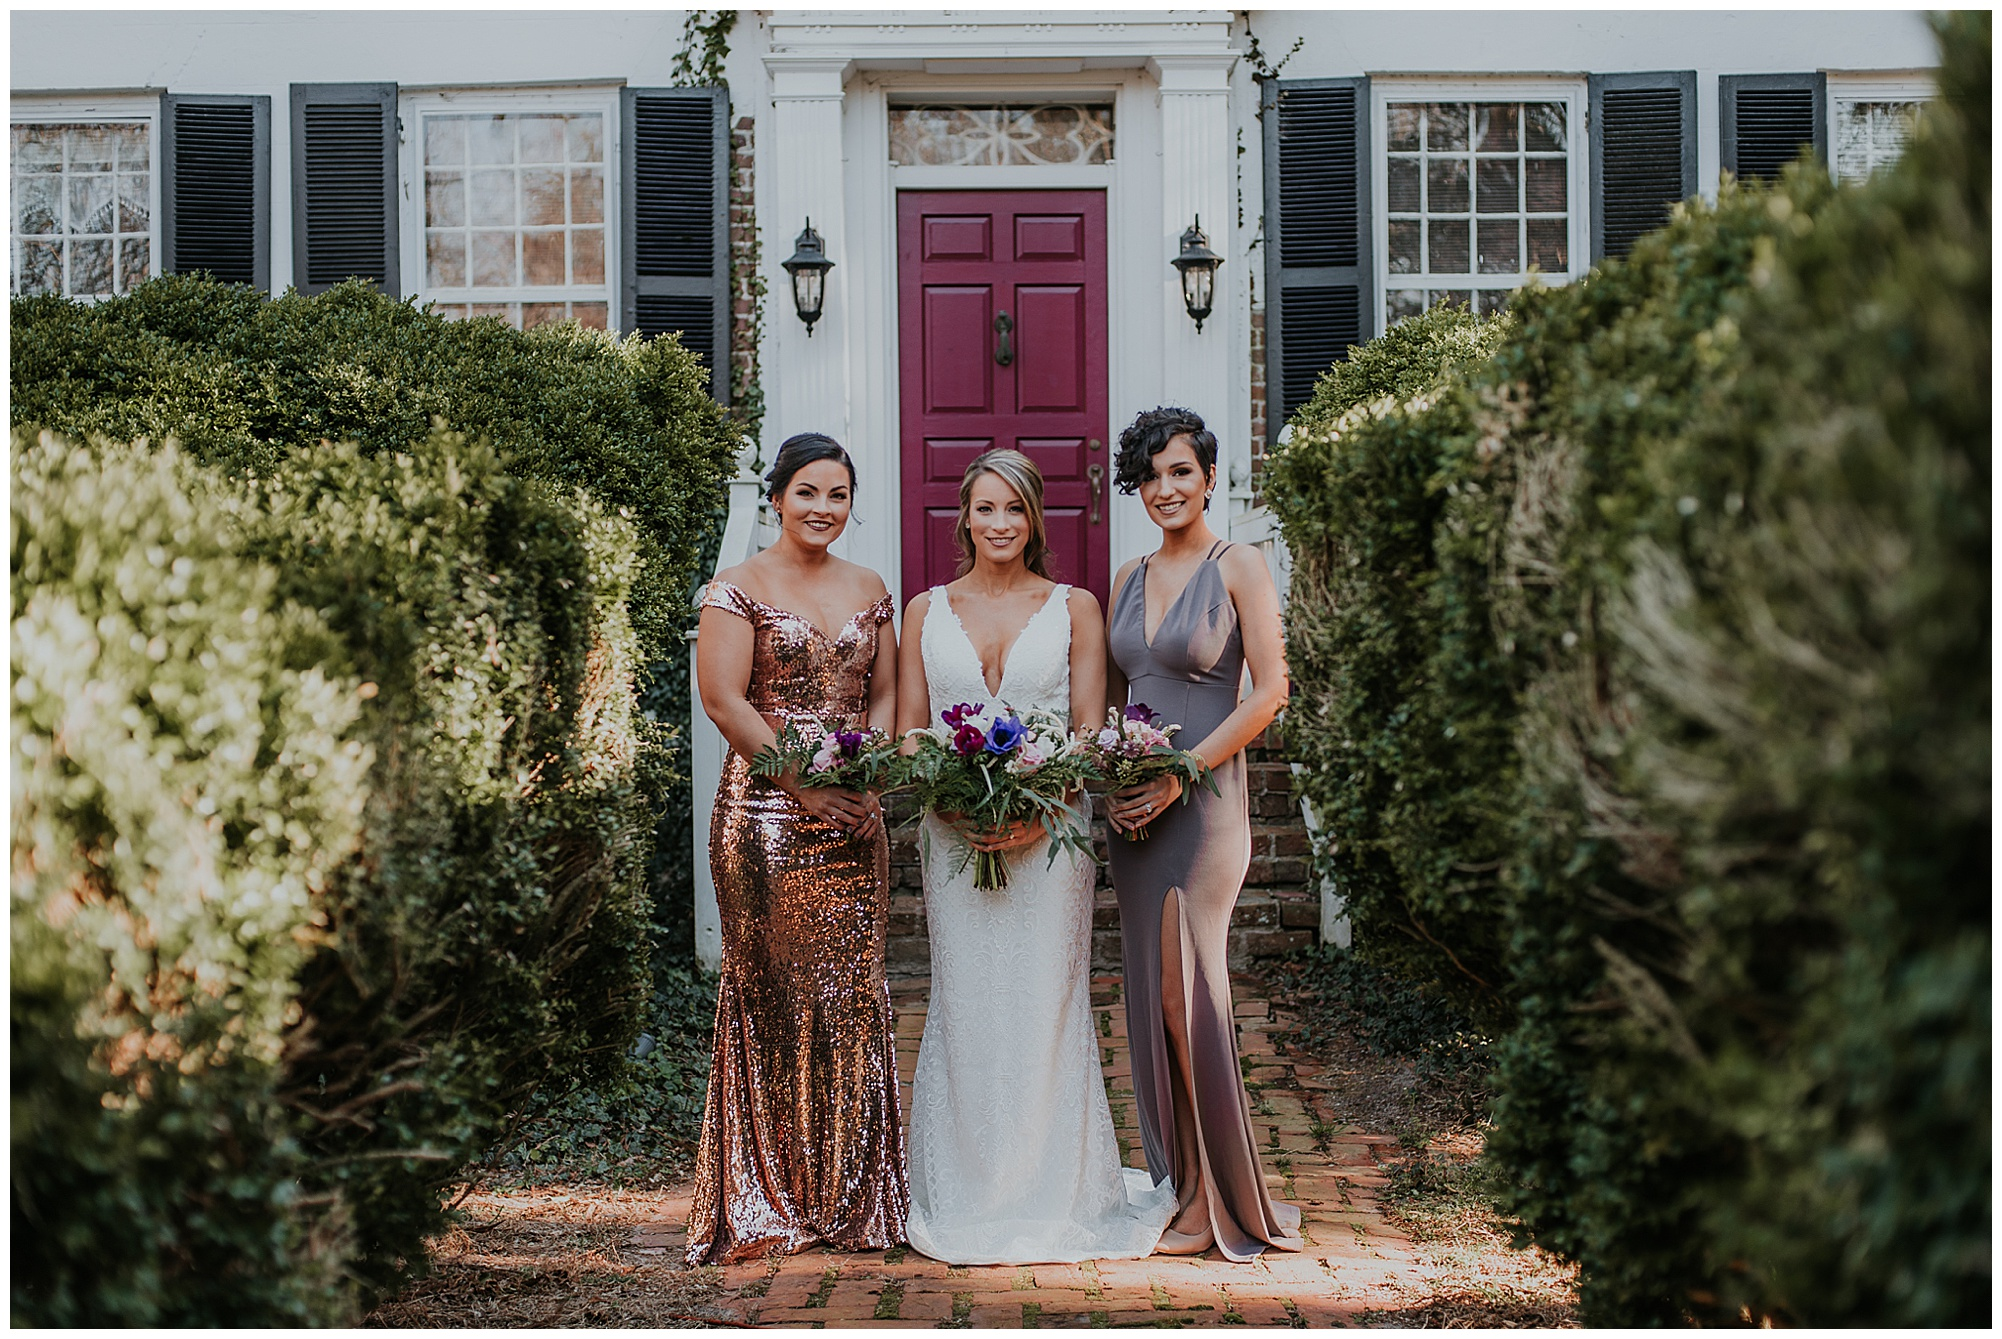 glamorous and boho style wedding theme at chanceford hall bed and breakfast. bride and bridesmaids outdoors at historic venue. maryland wedding now featured on my eastern shore wedding.